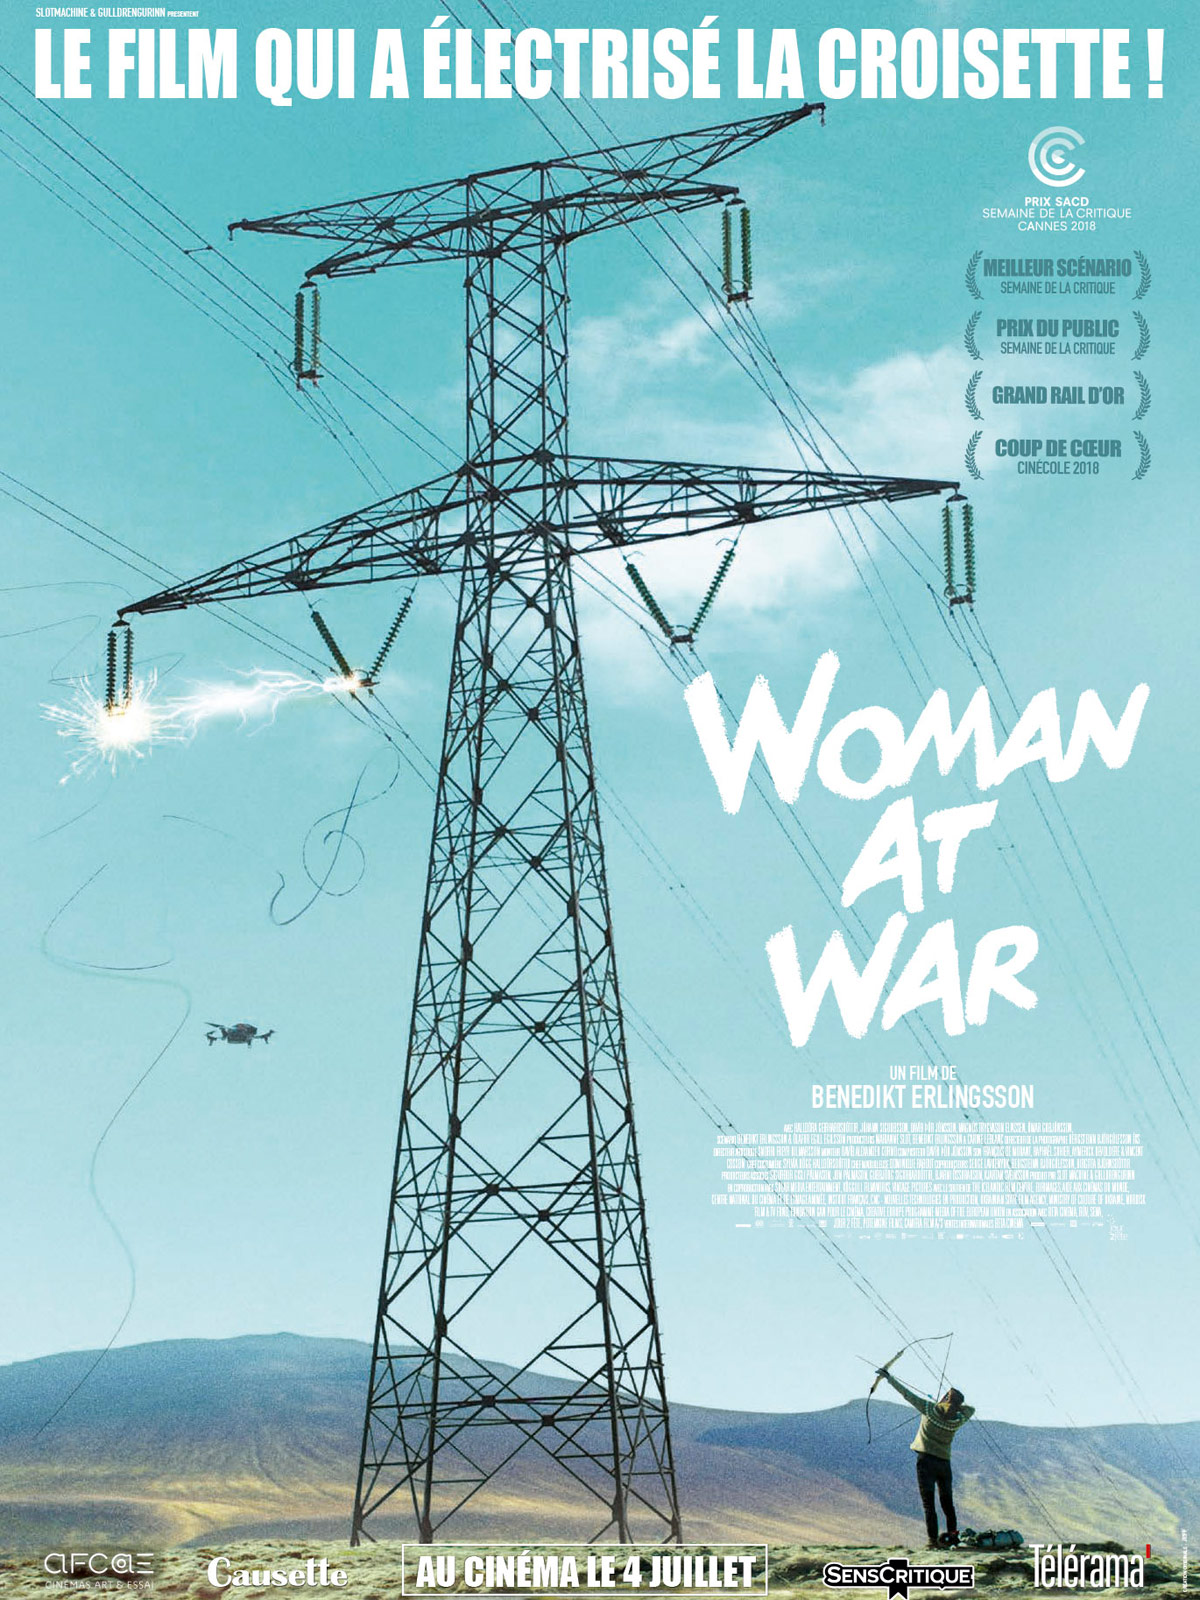 Woman at war - Benedikt Erlingsson,